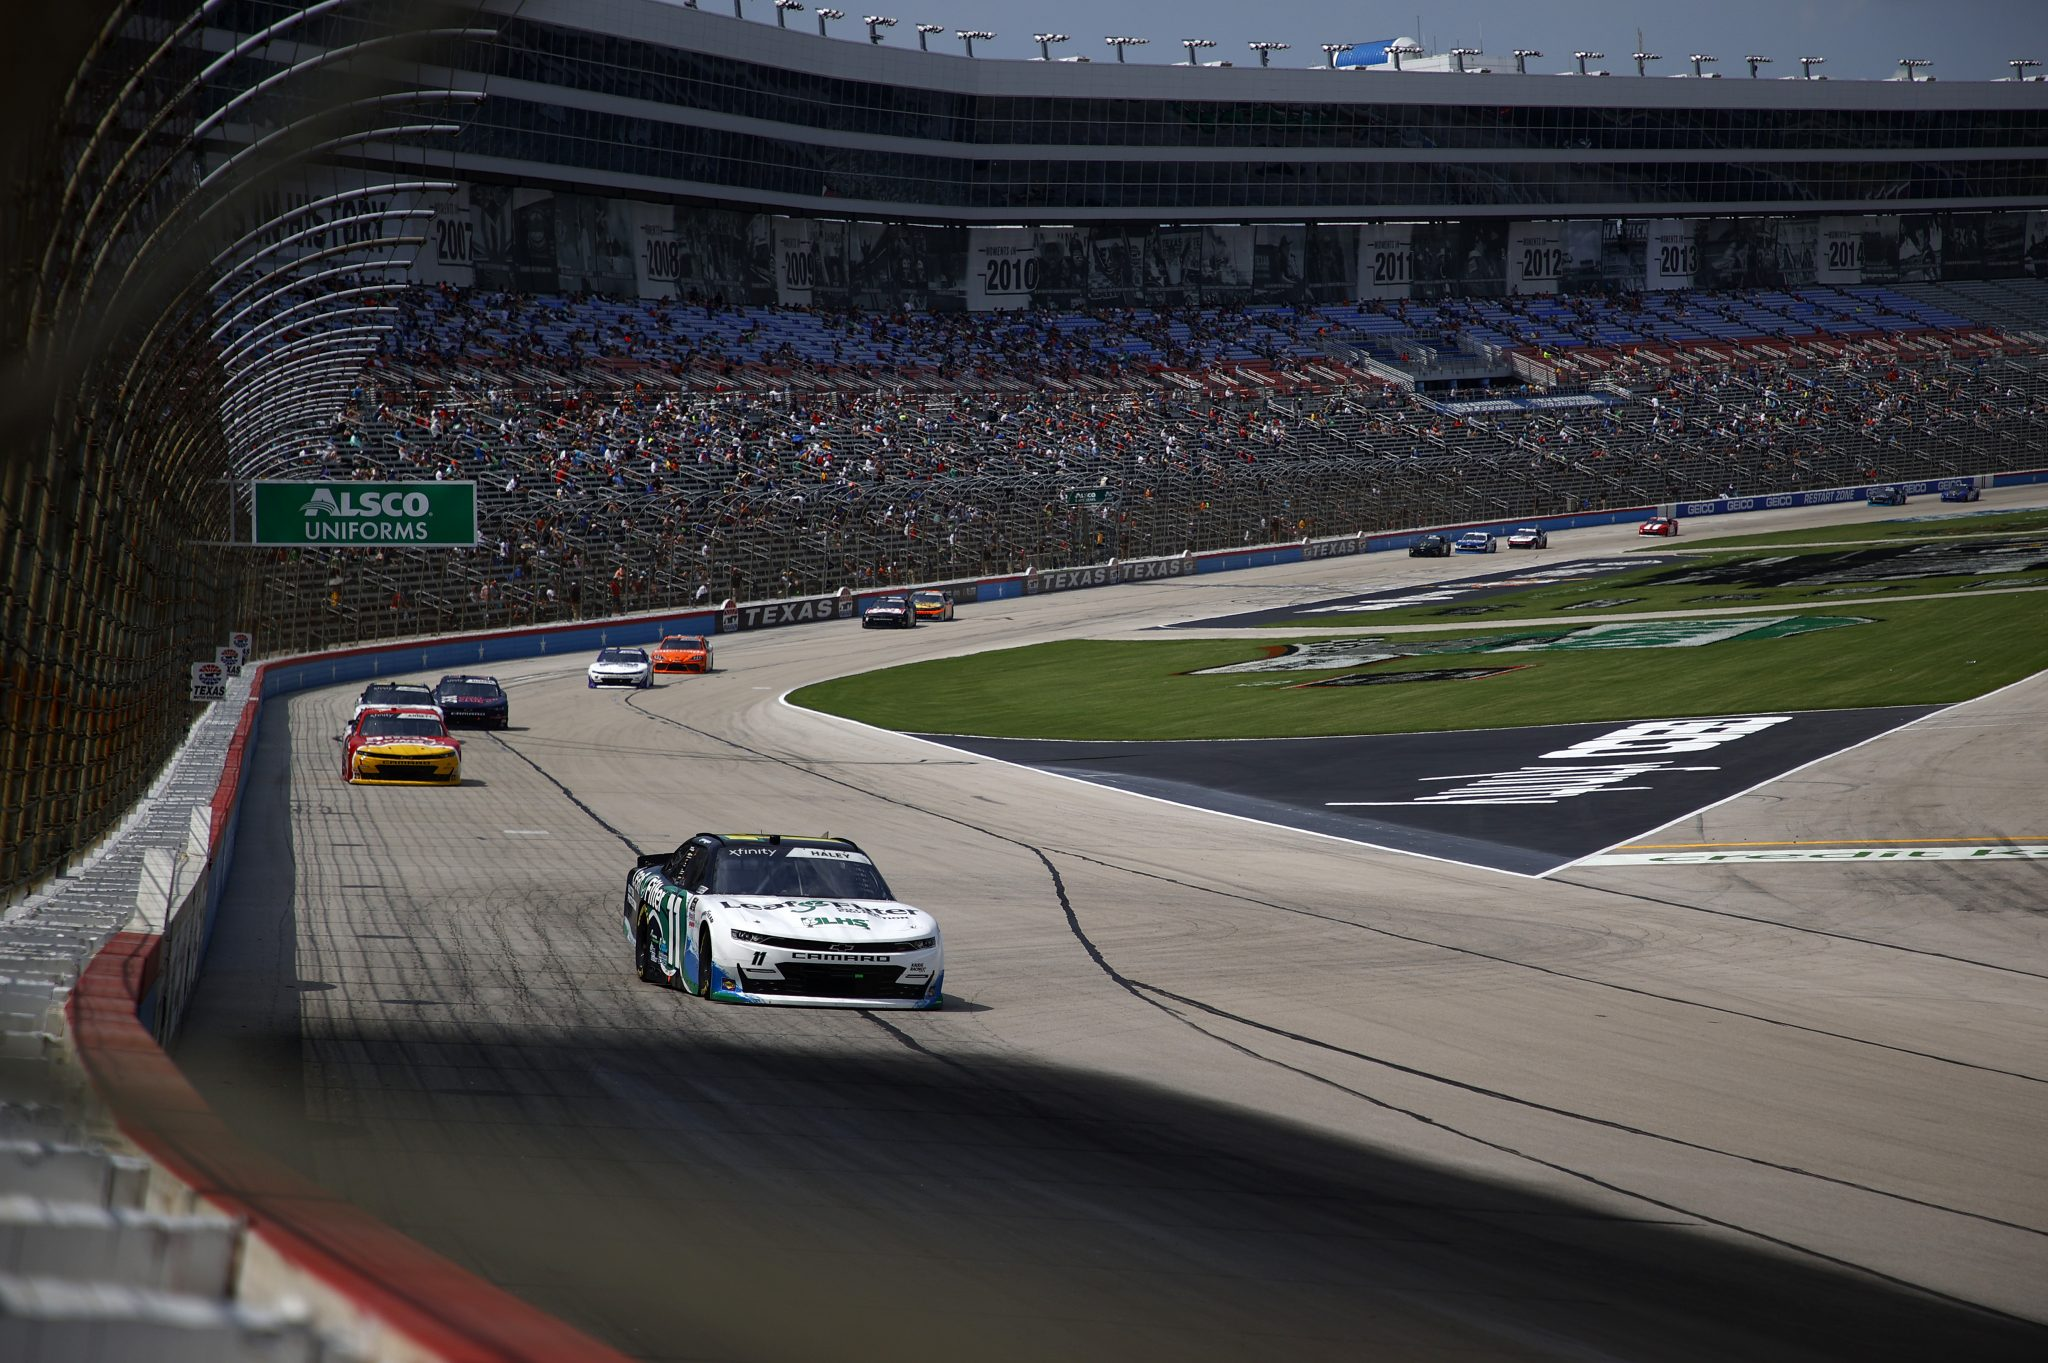 FORT WORTH, TEXAS - JUNE 12: Justin Haley, driver of the #11 LeafFilter Gutter Protection Chevrolet, drives during the NASCAR Xfinity Series Alsco Uniforms 250 at Texas Motor Speedway on June 12, 2021 in Fort Worth, Texas. (Photo by Jared C. Tilton/Getty Images) | Getty Images